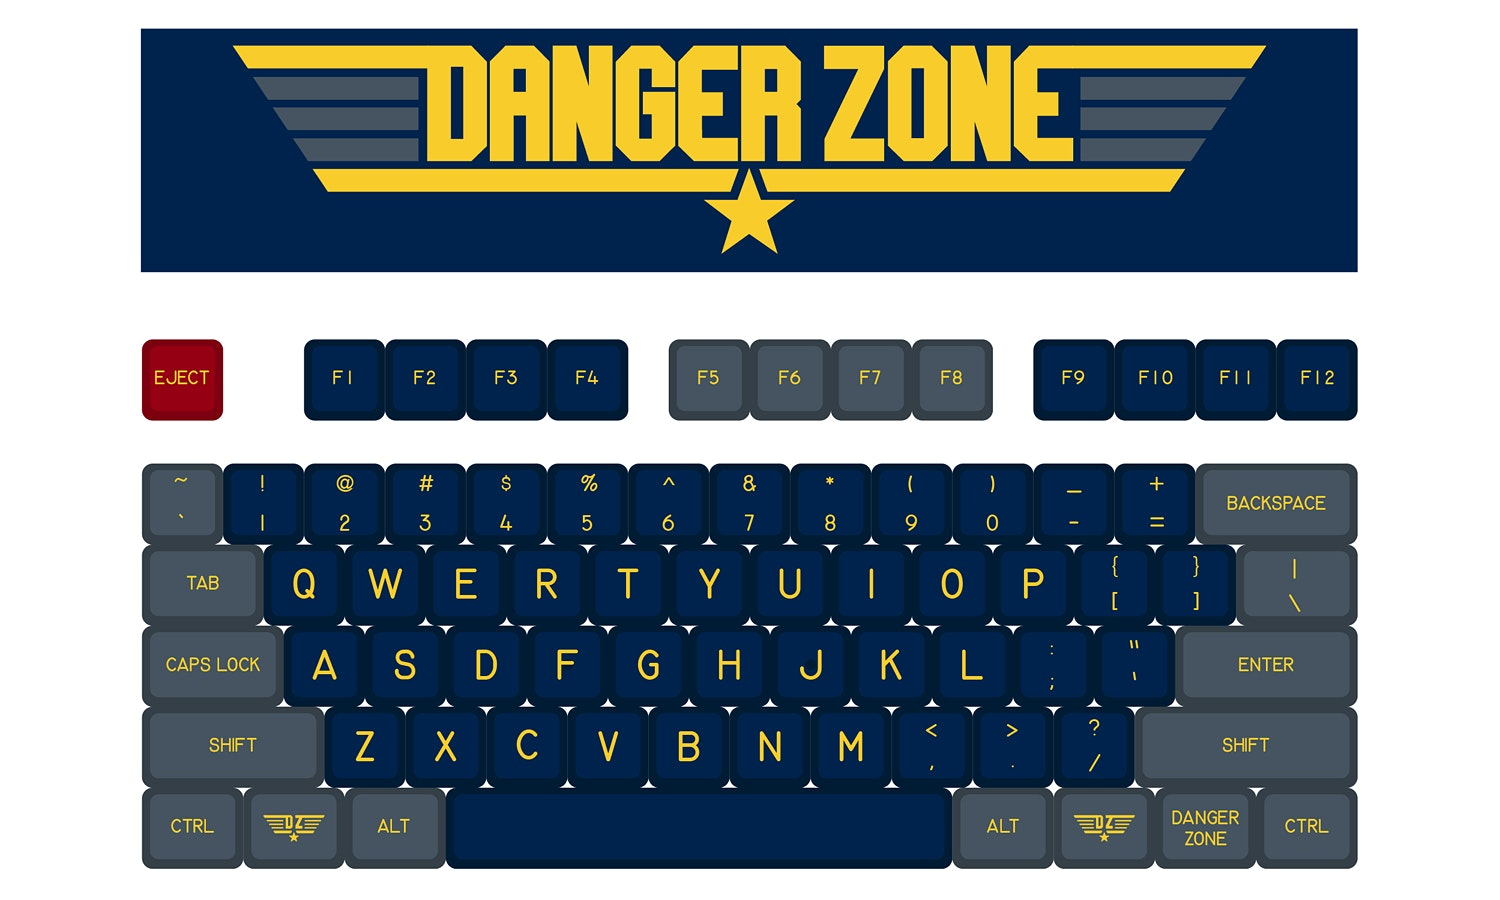 Danger Zone SA Keycap Set | Price & Reviews | Massdrop